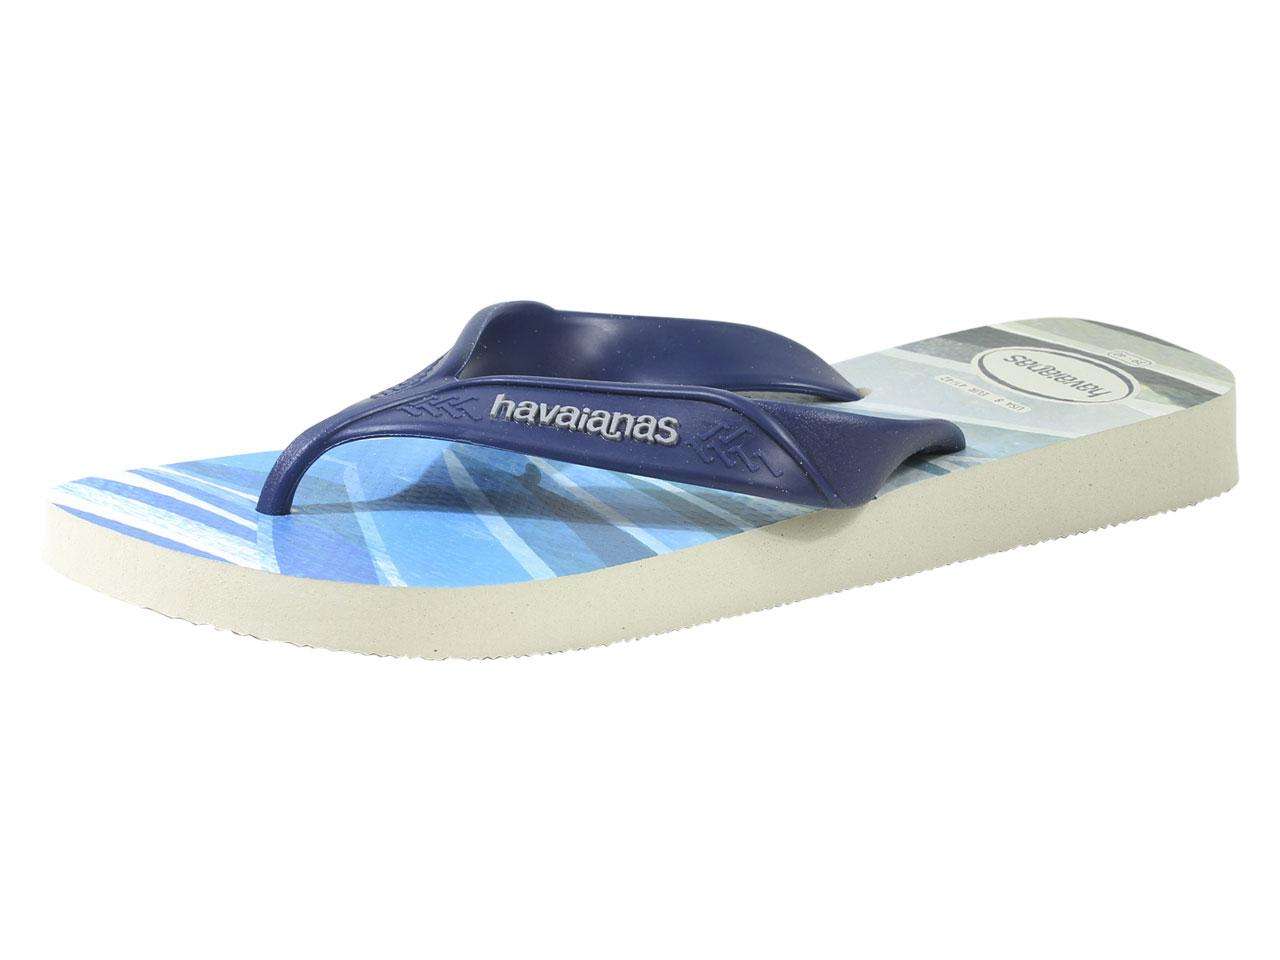 94720b6847946f Havaianas Men s Surf Flip Flops Sandals Shoes